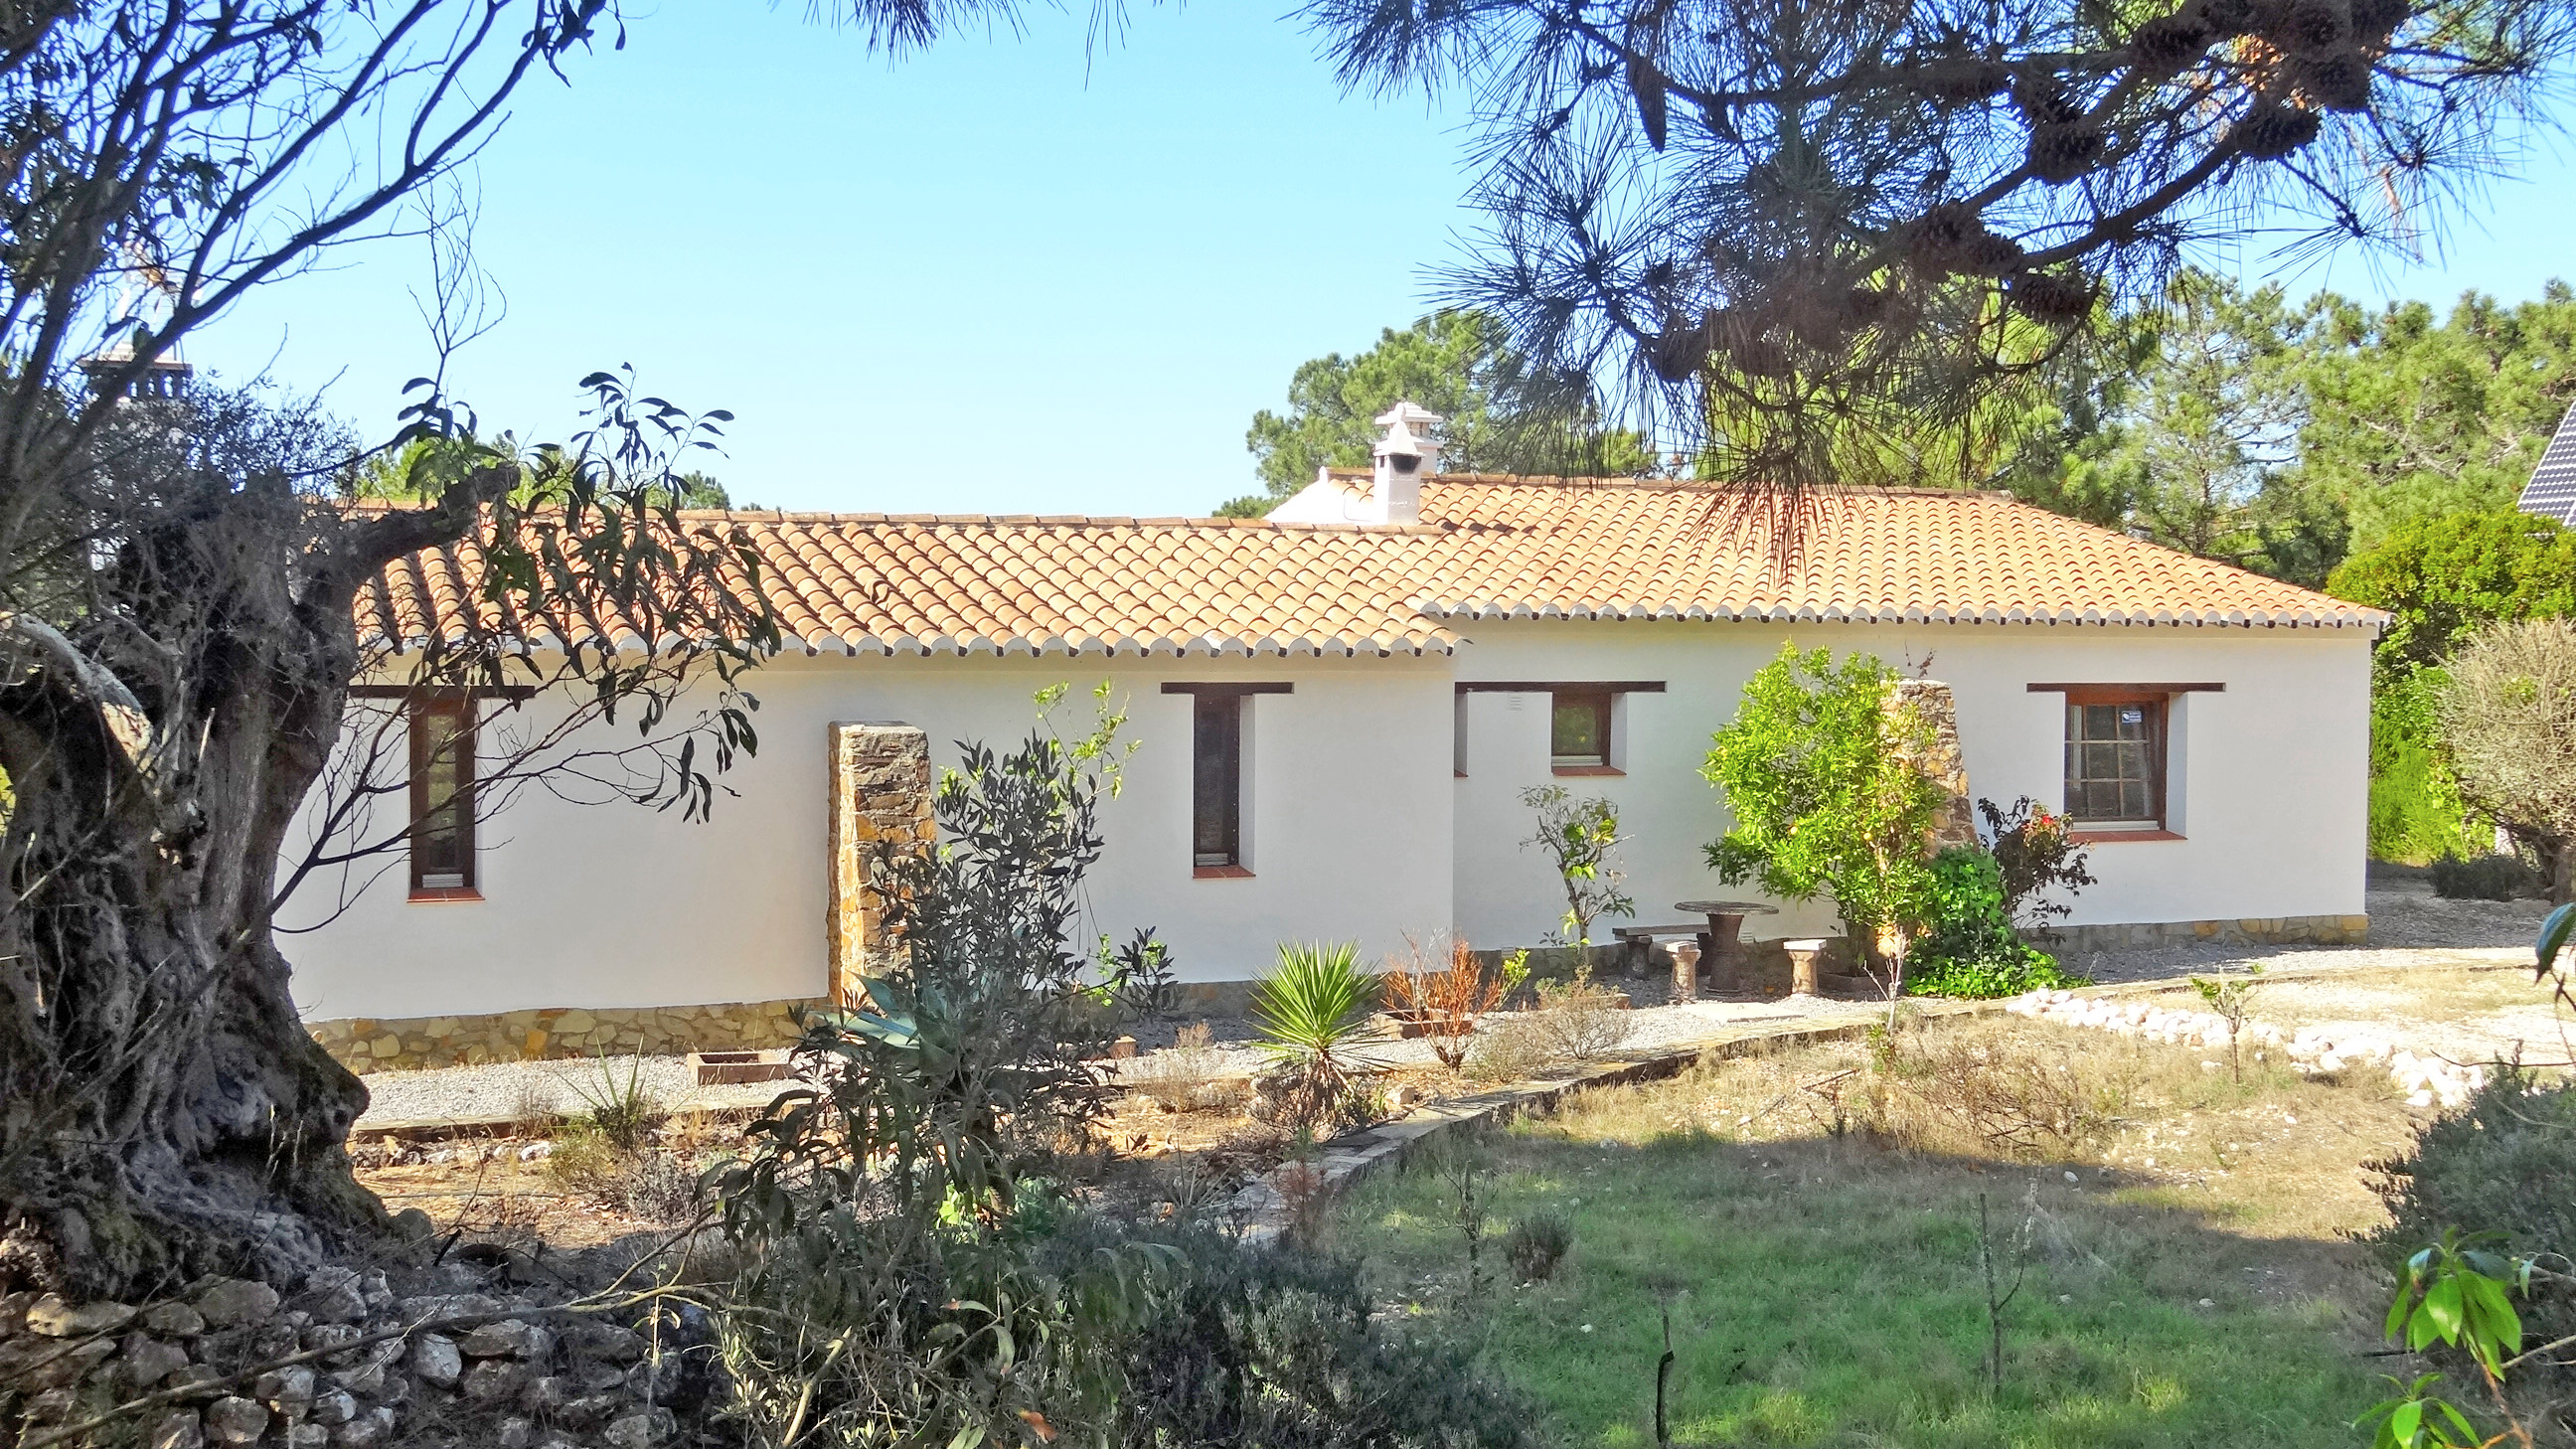 2 bedroom country house on huge plot in spectacular location 250m from sea, Rogil, West Coast  | LG989 This private 2 bedroom country house, sits on a large plot of over 9 hectares within the South west Alentejano Natural Parque within walking distance of a beautiful west coast beach. The house is renovated in the traditional Algarve style, totally self-sufficient and has a borehole, water tank and natural pond, providing plenty of irrigation and water to the property. A true 'country escape'.